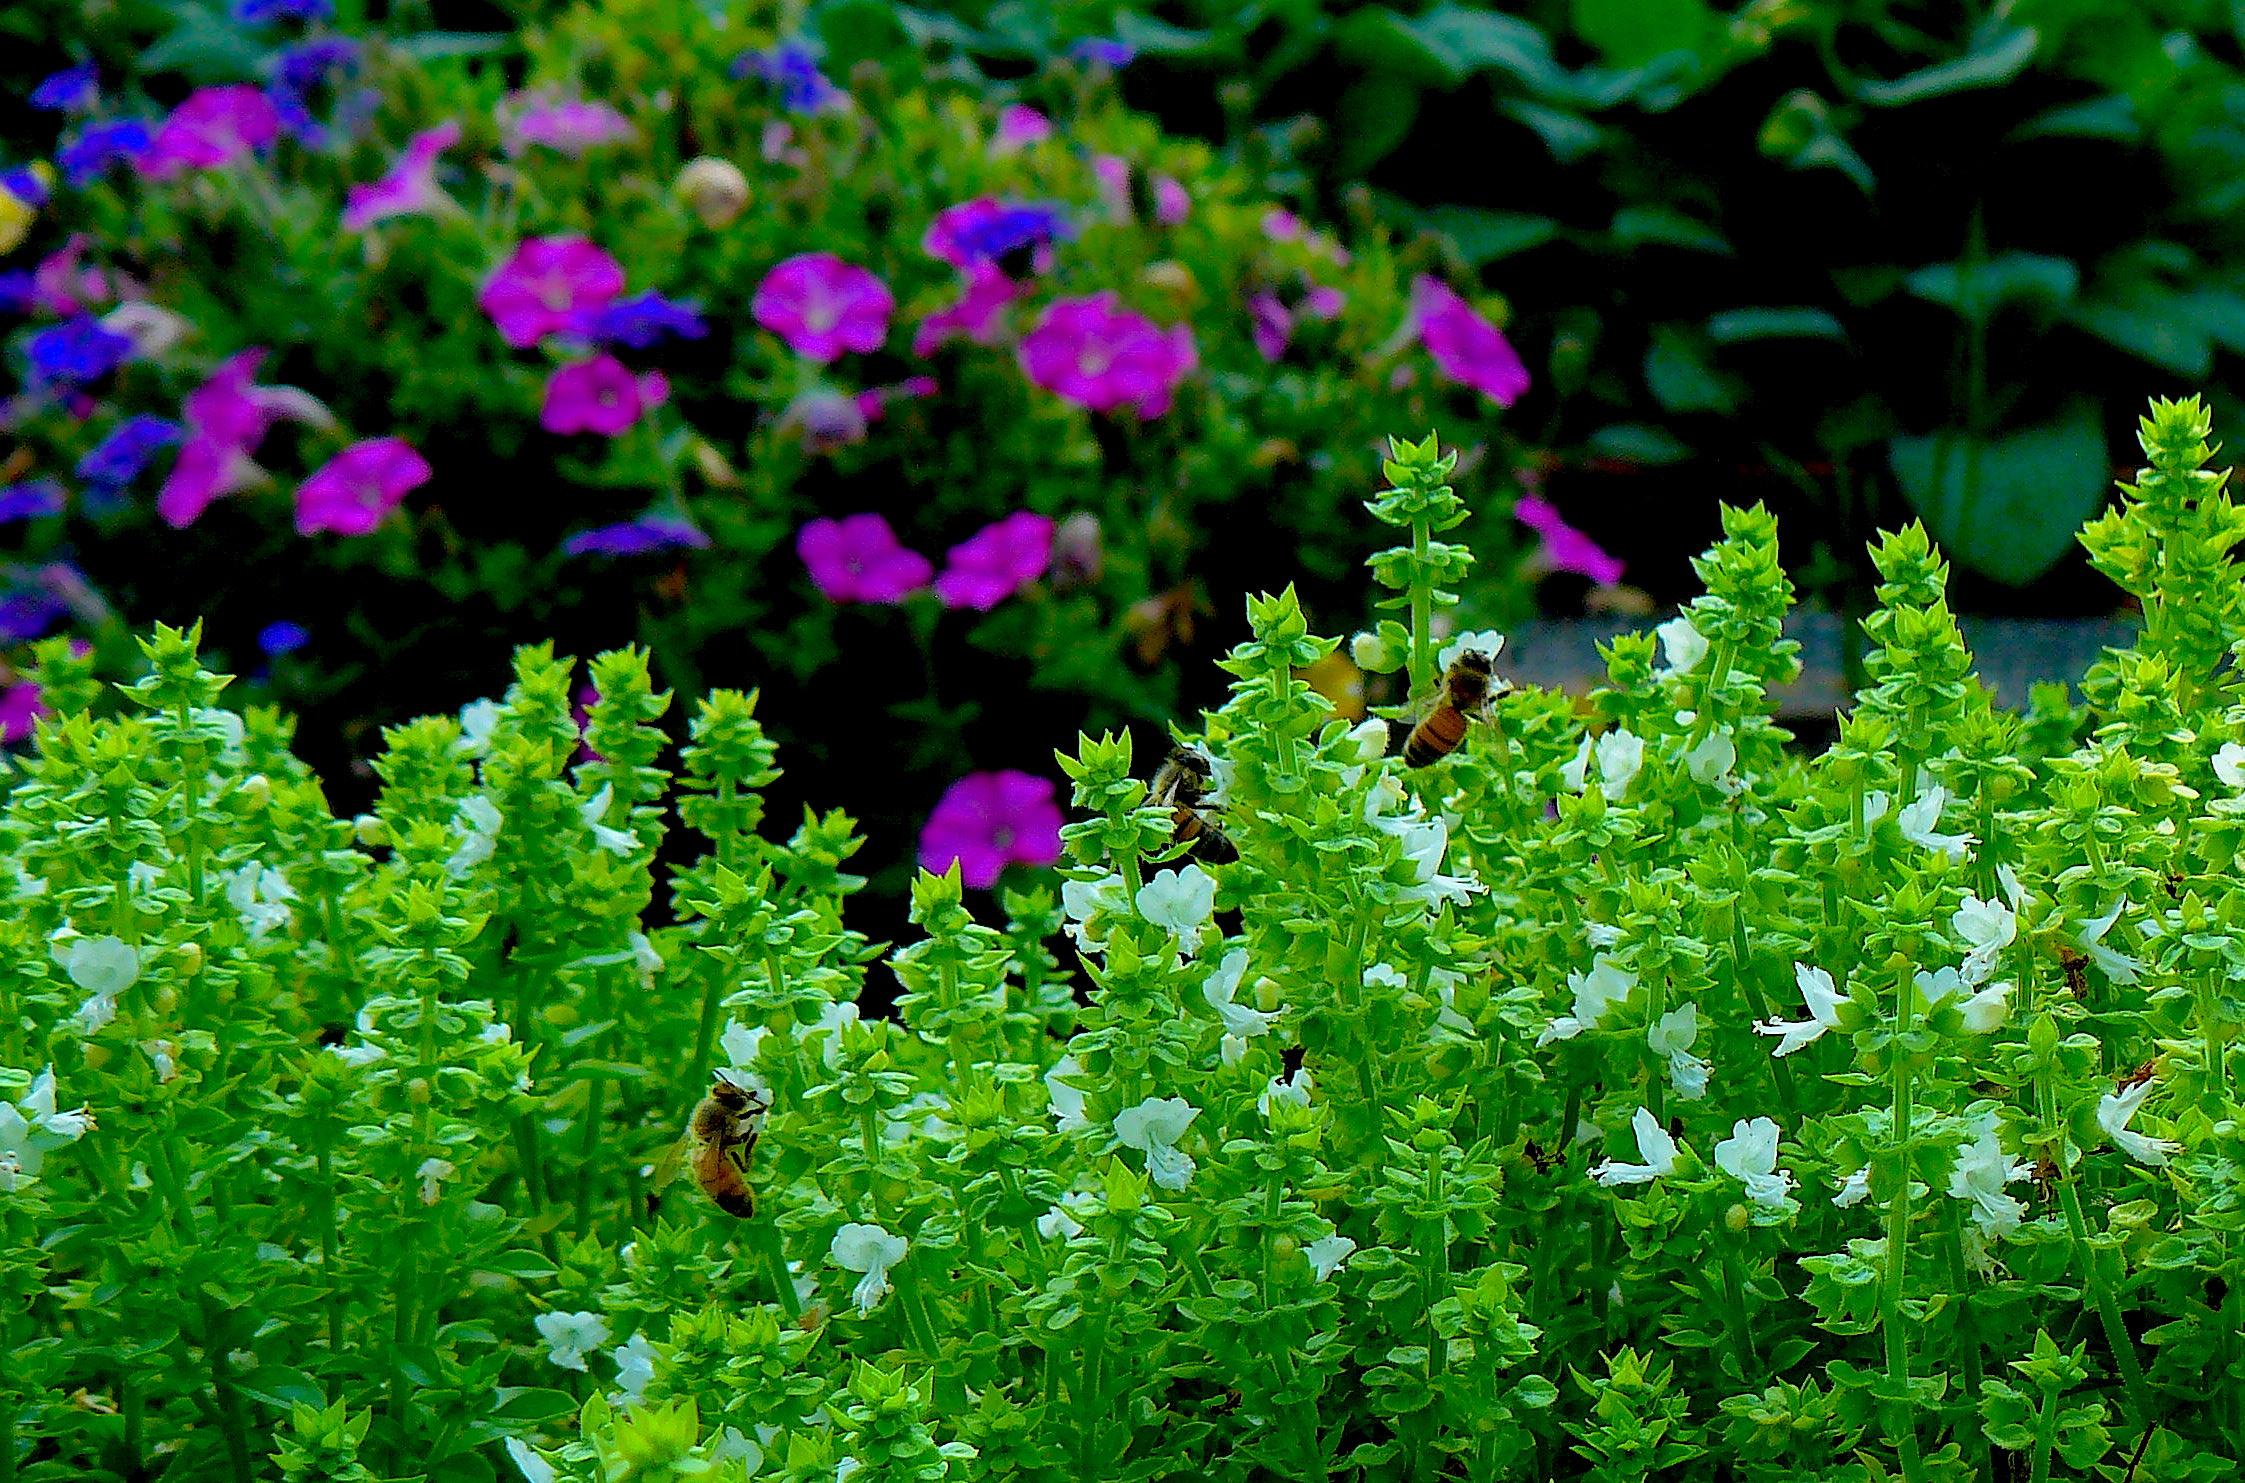 Two bees on white flowers of spicy globe Greek basil (Ocimum basilicum 'Minimum') with pink and purple petunias in the background.